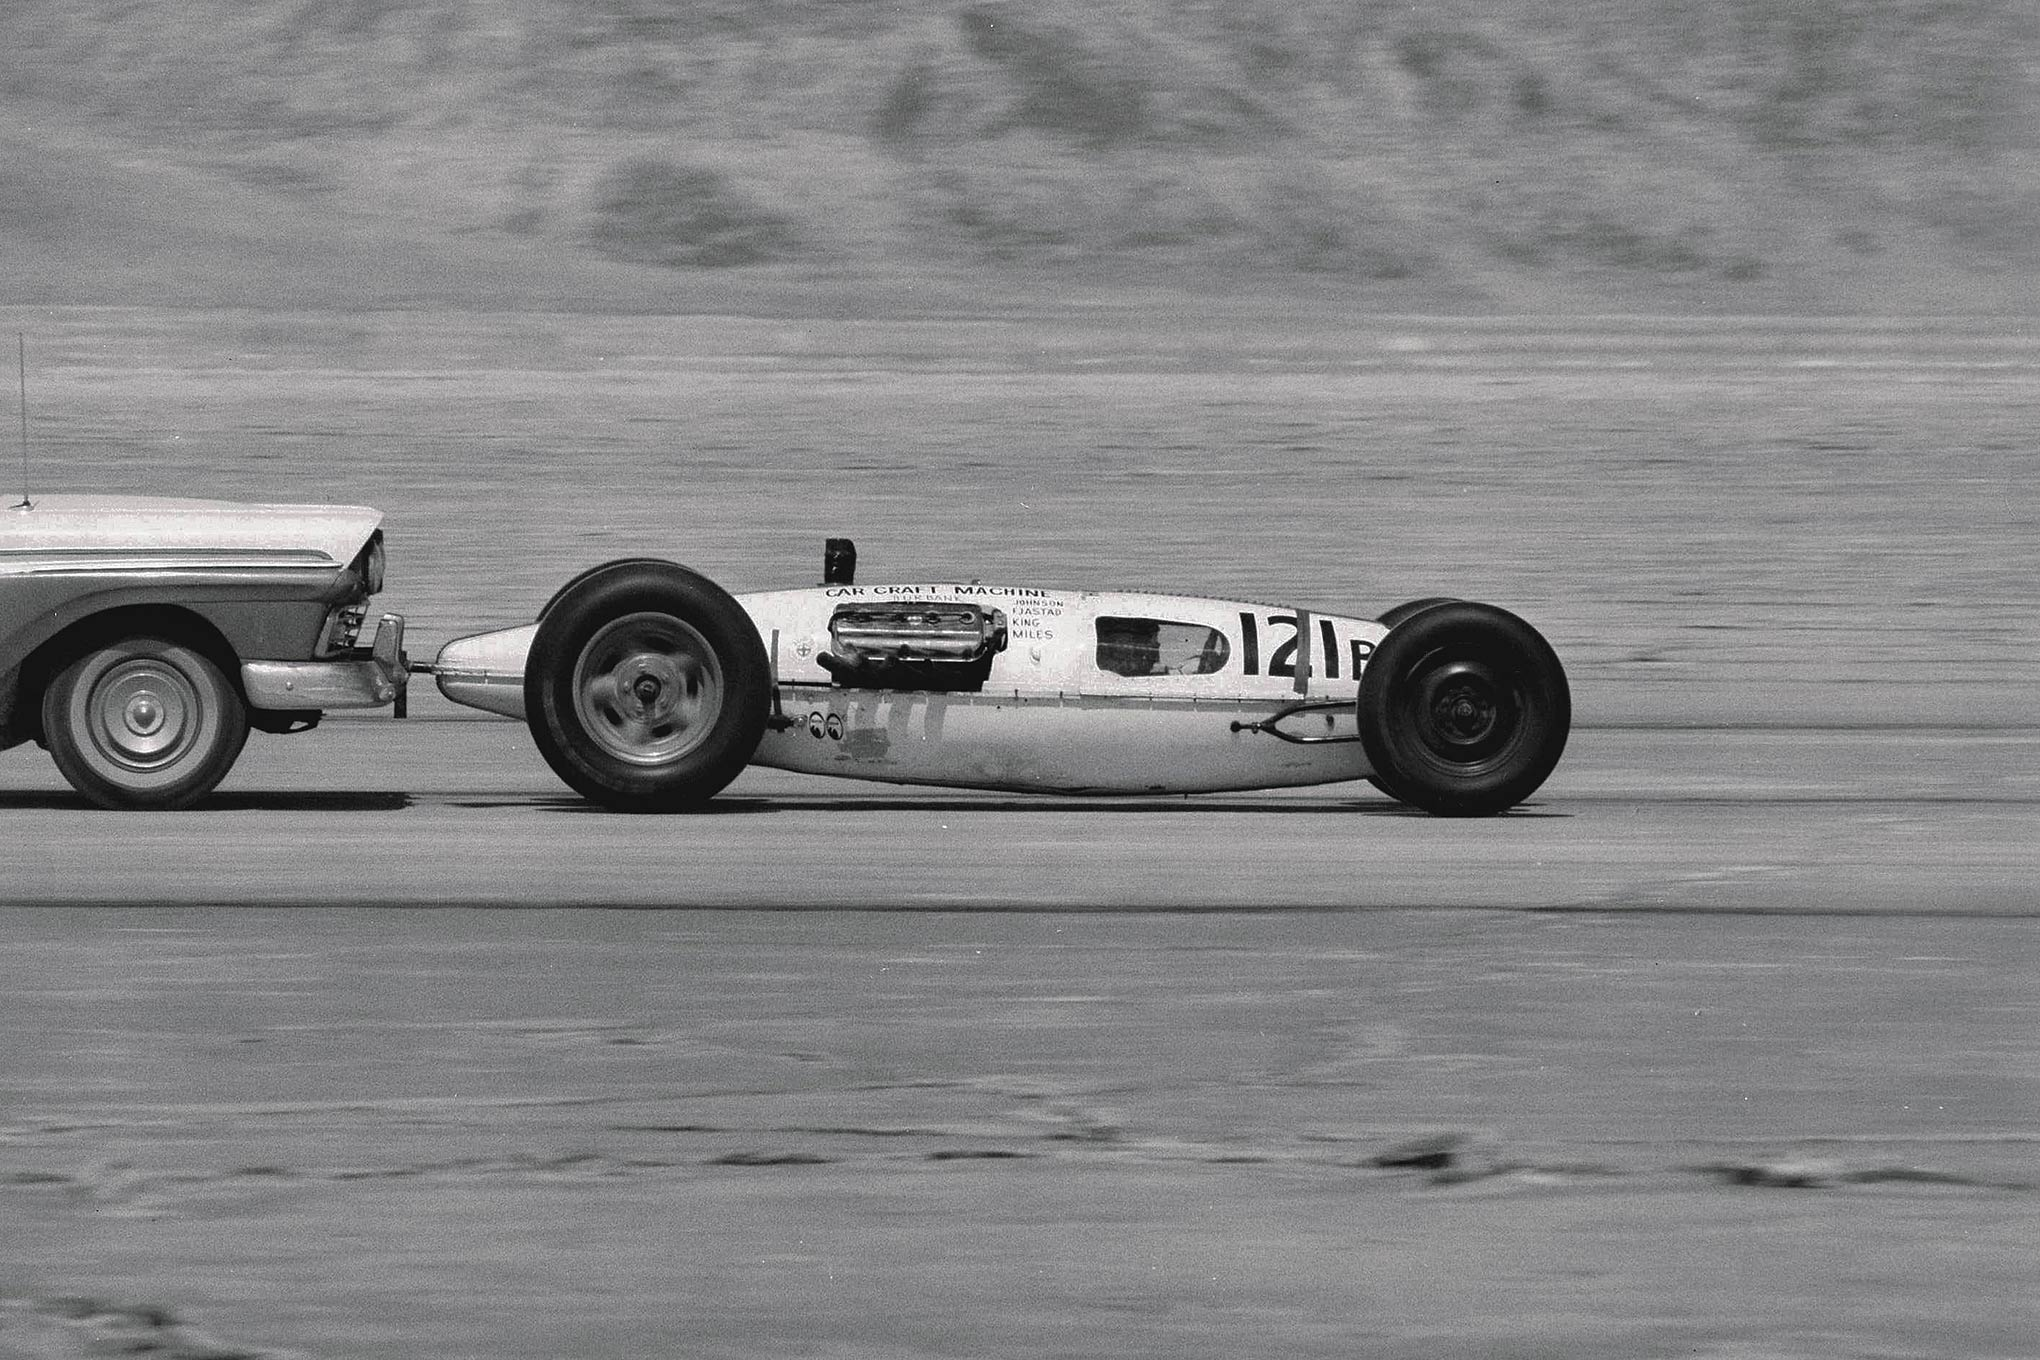 "Don Johnson—""The Beachcomber""—and chassis builder Roy Fjastad (SPE and later Deuce Factory) plopped Fjastad's 464-inch injected Chrysler into the Car Craft Machine tank and ran 247.59 in 1961."